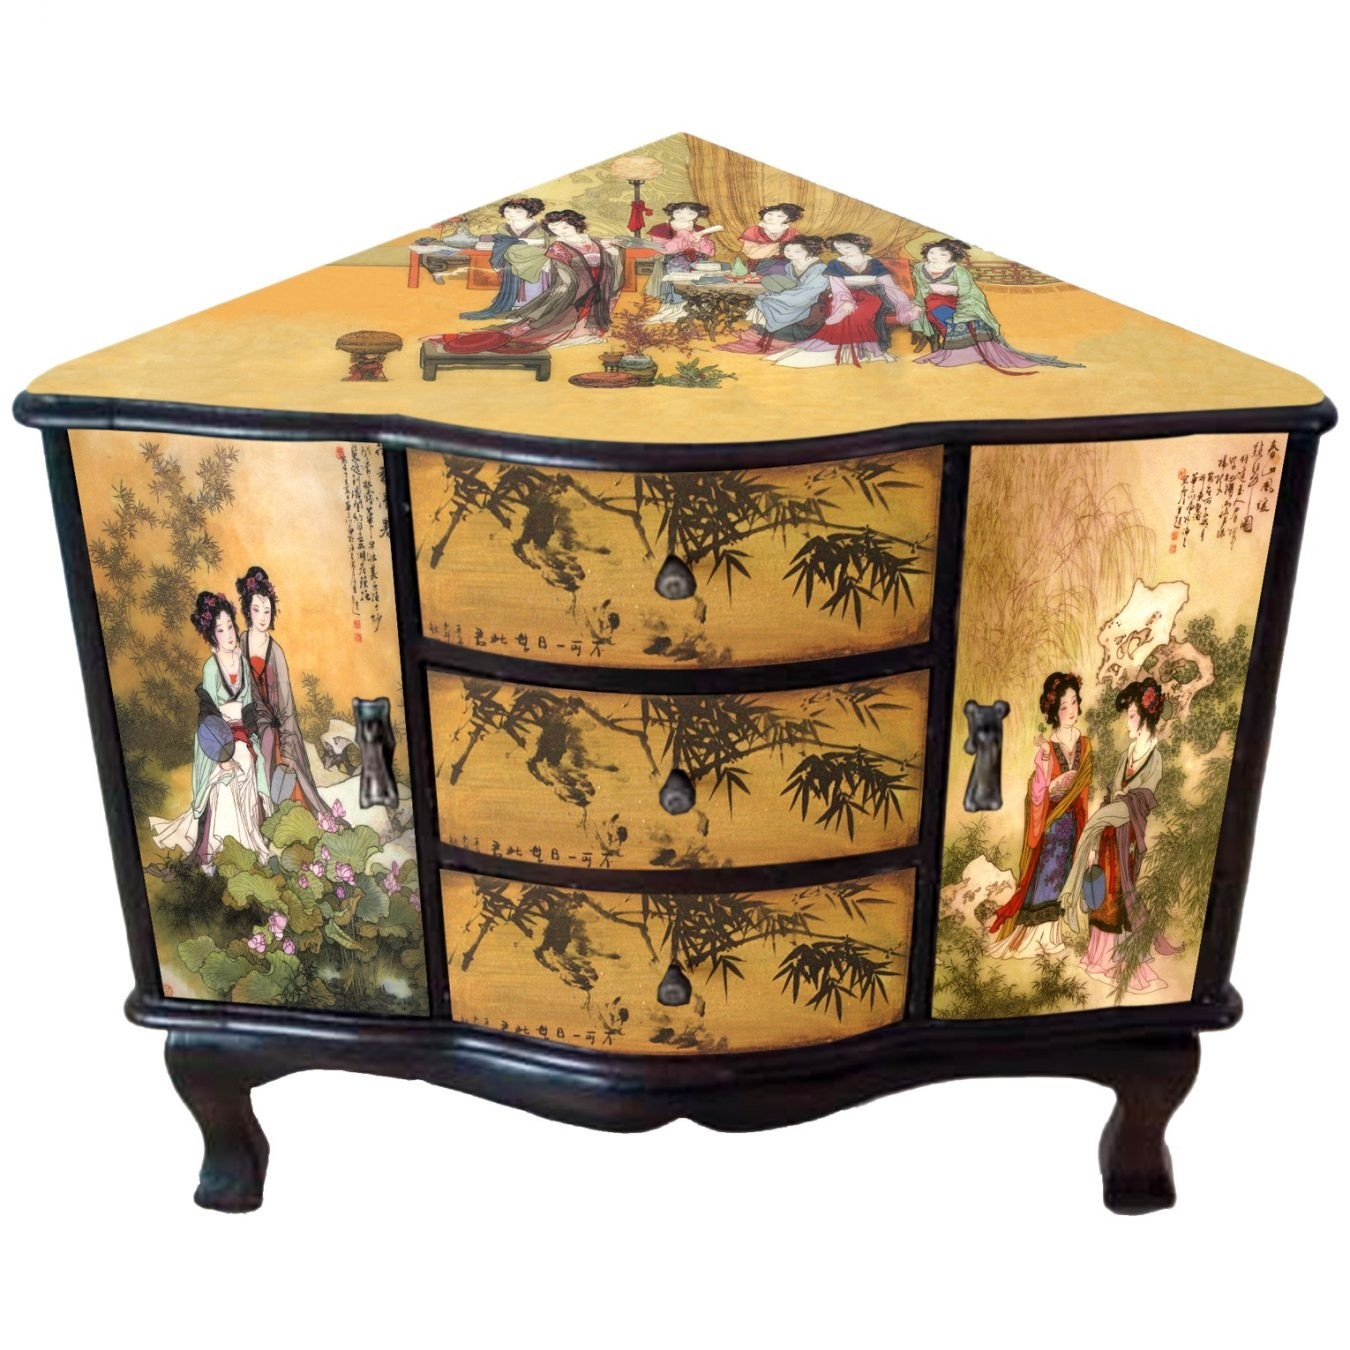 Superbe Oriental Furniture Best Quality Low Price Japanese Style Decor Accent  Accessory, 24 Inch Enchanted